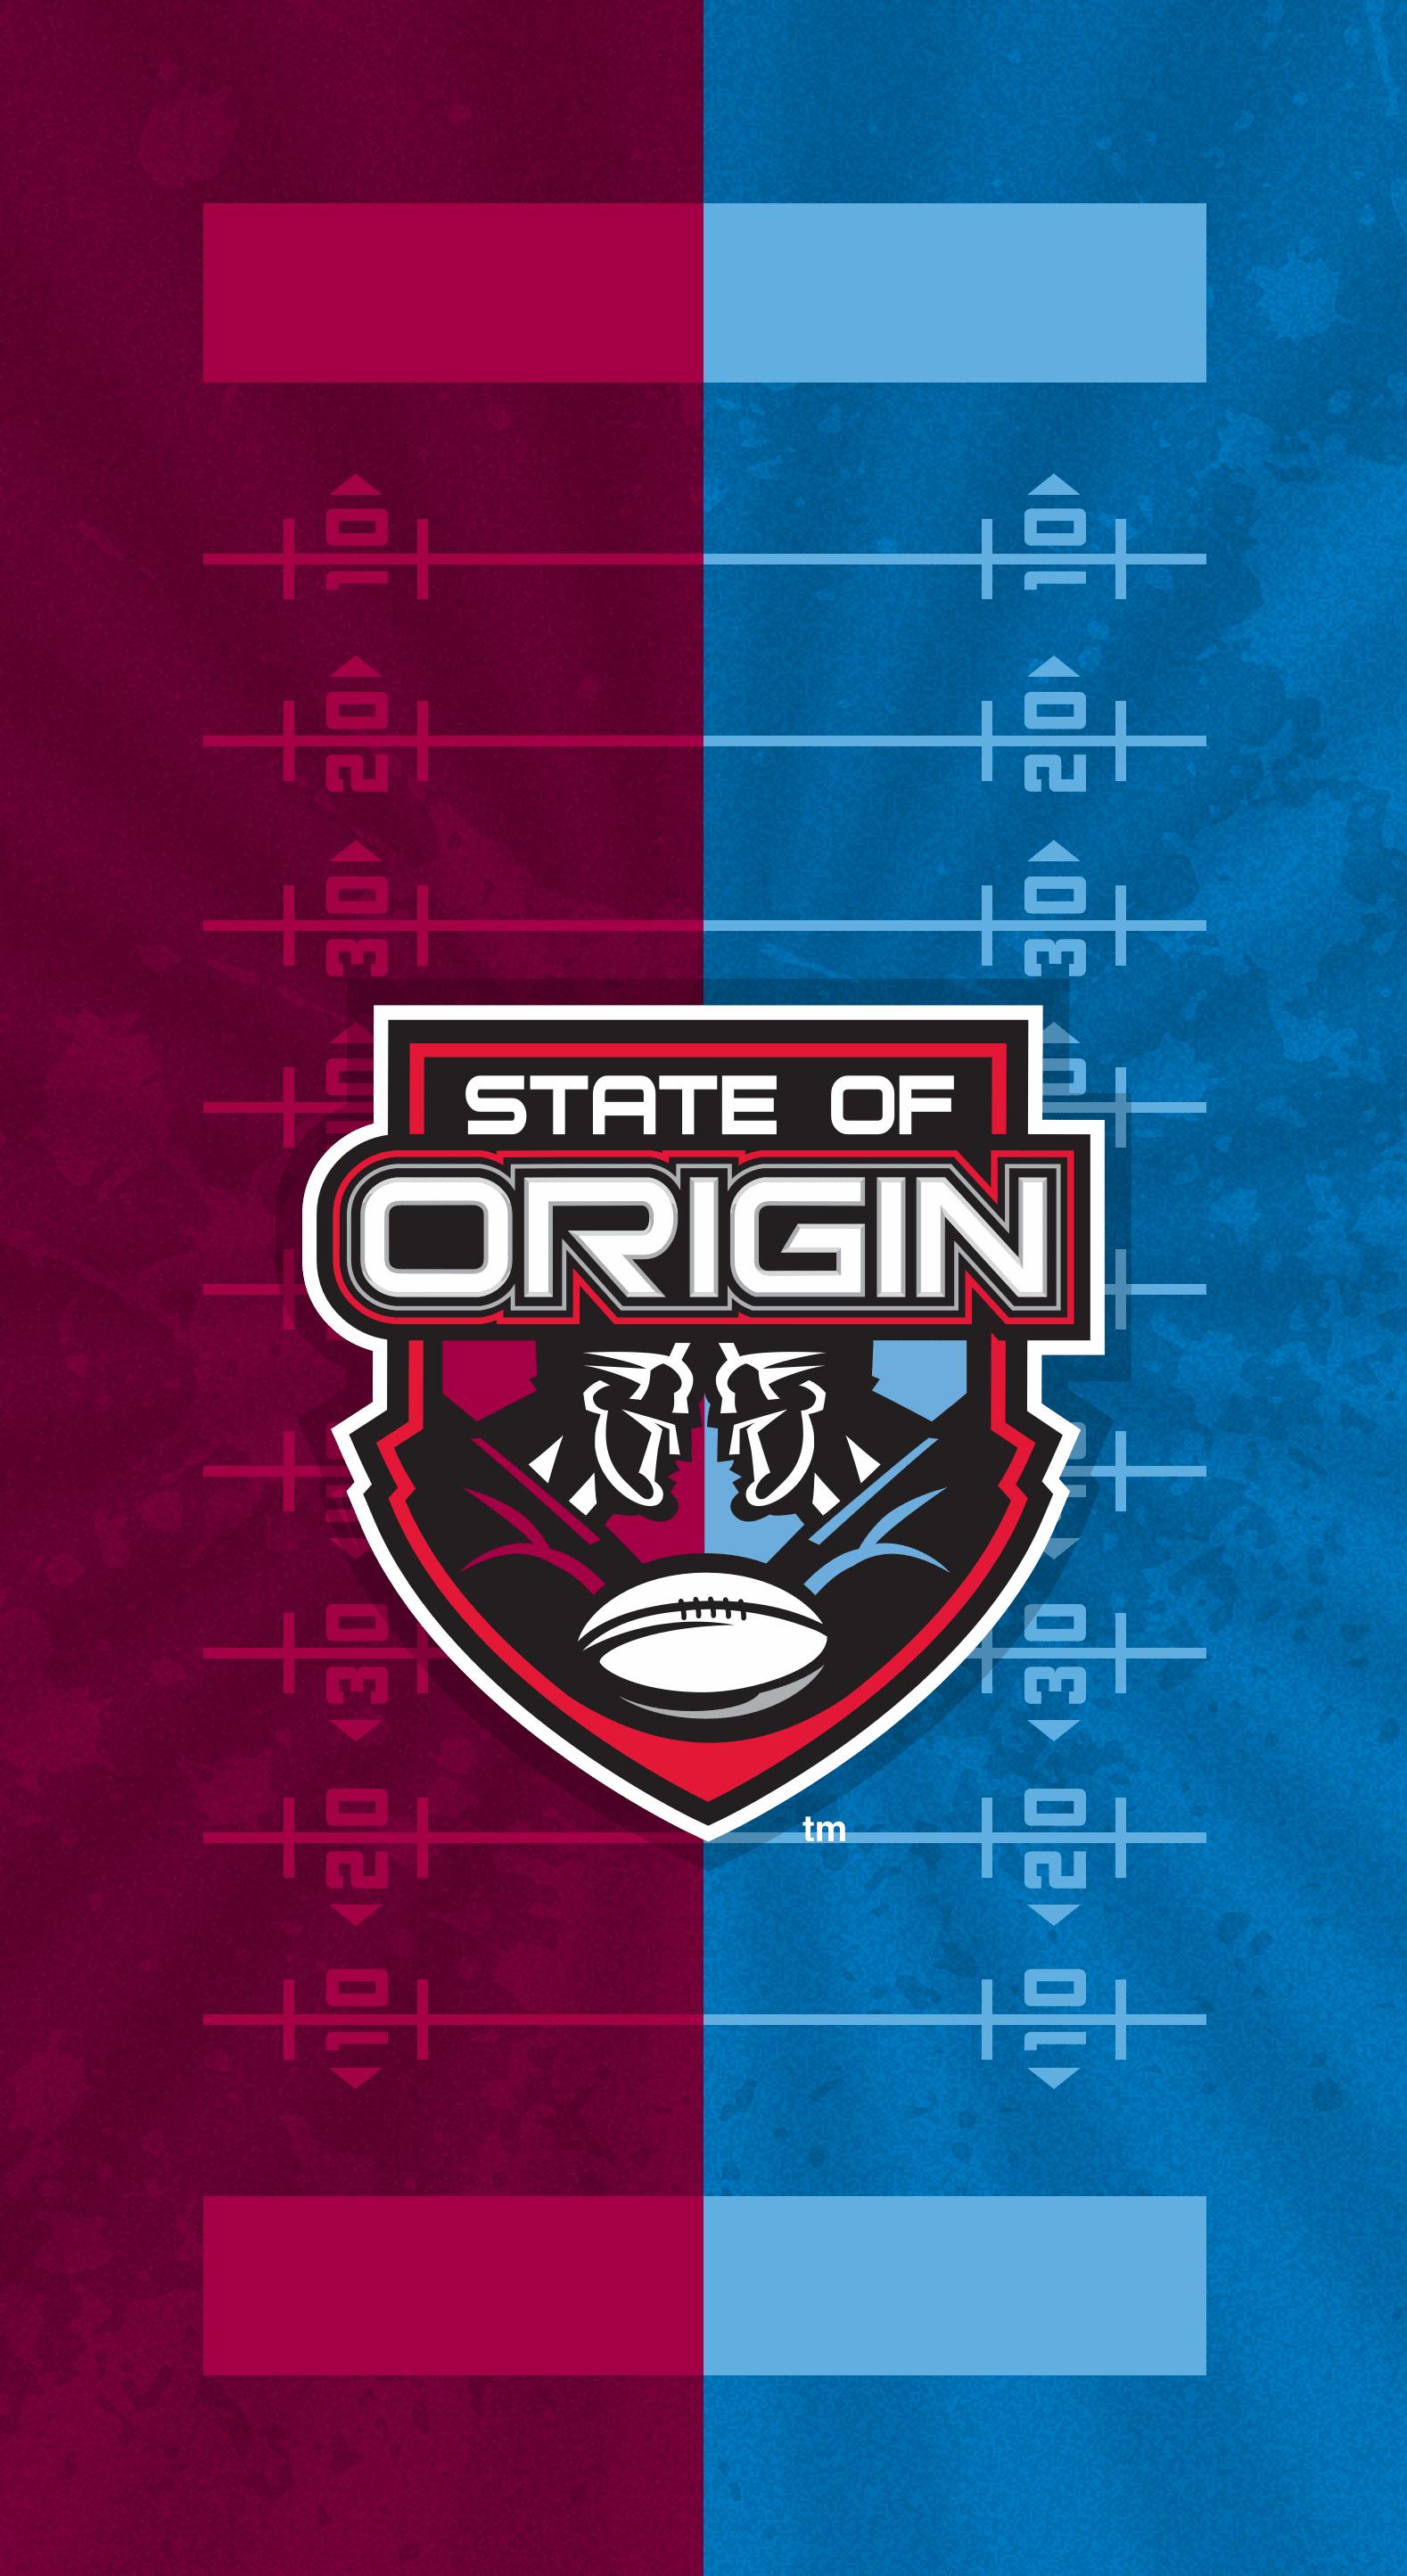 2013 State of Origin iPhone X Lock Screen Wallpaper